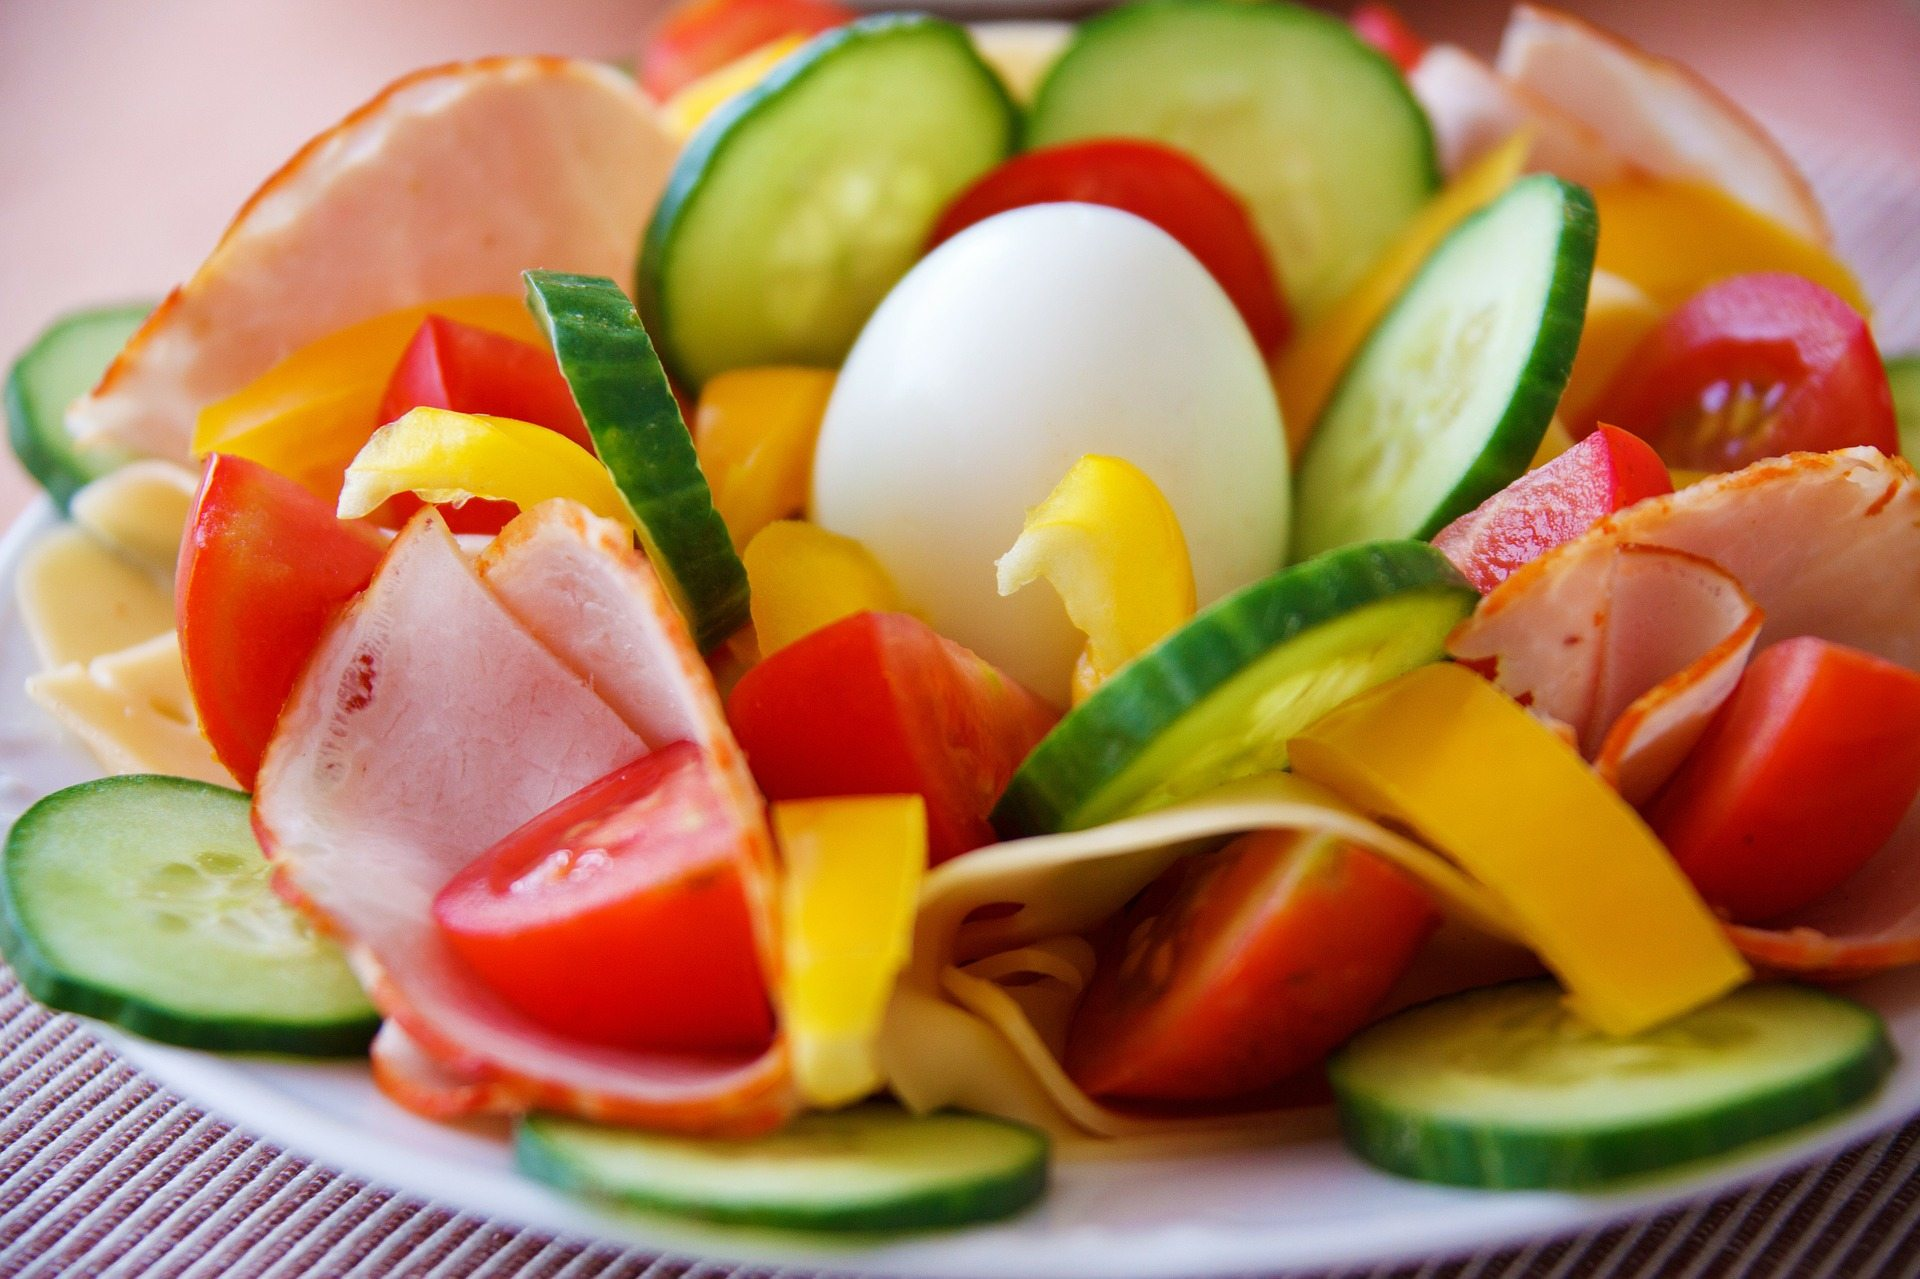 breakfast 21707 1920 - 4 Simple Tips For A Happier Healthier Workday